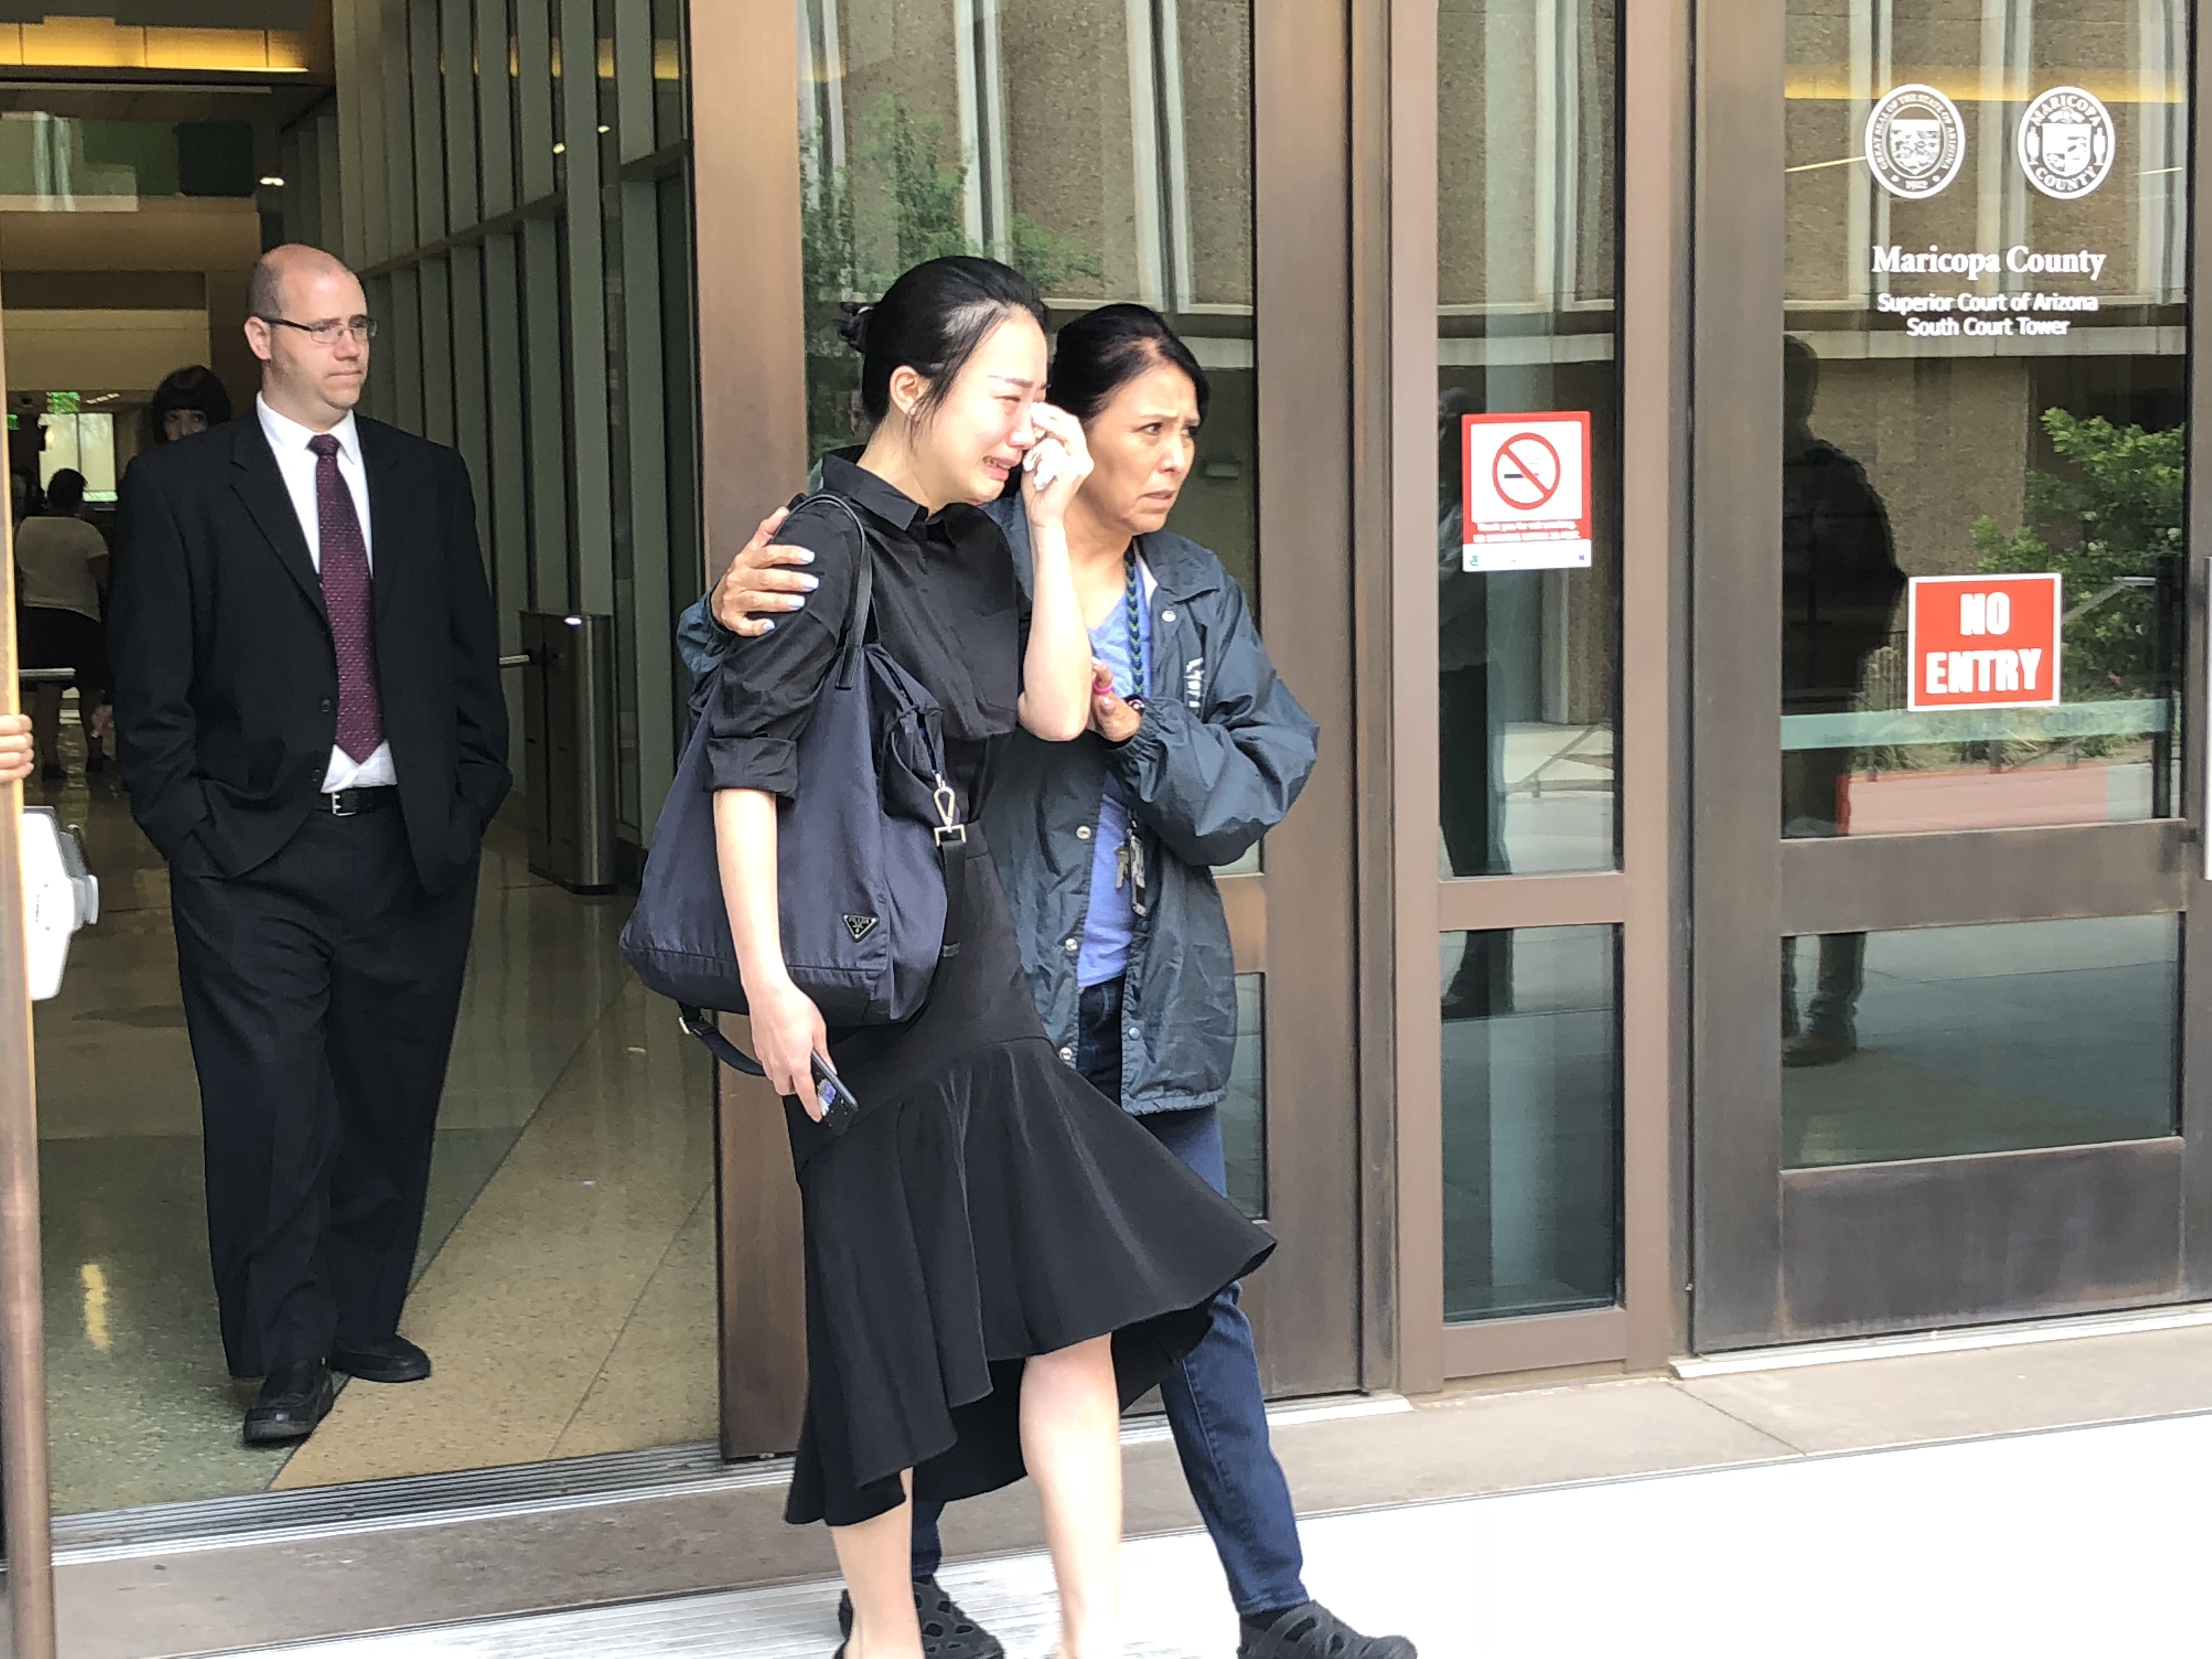 American woman sentenced to 25 years for killing Chinese student after rear-end crash